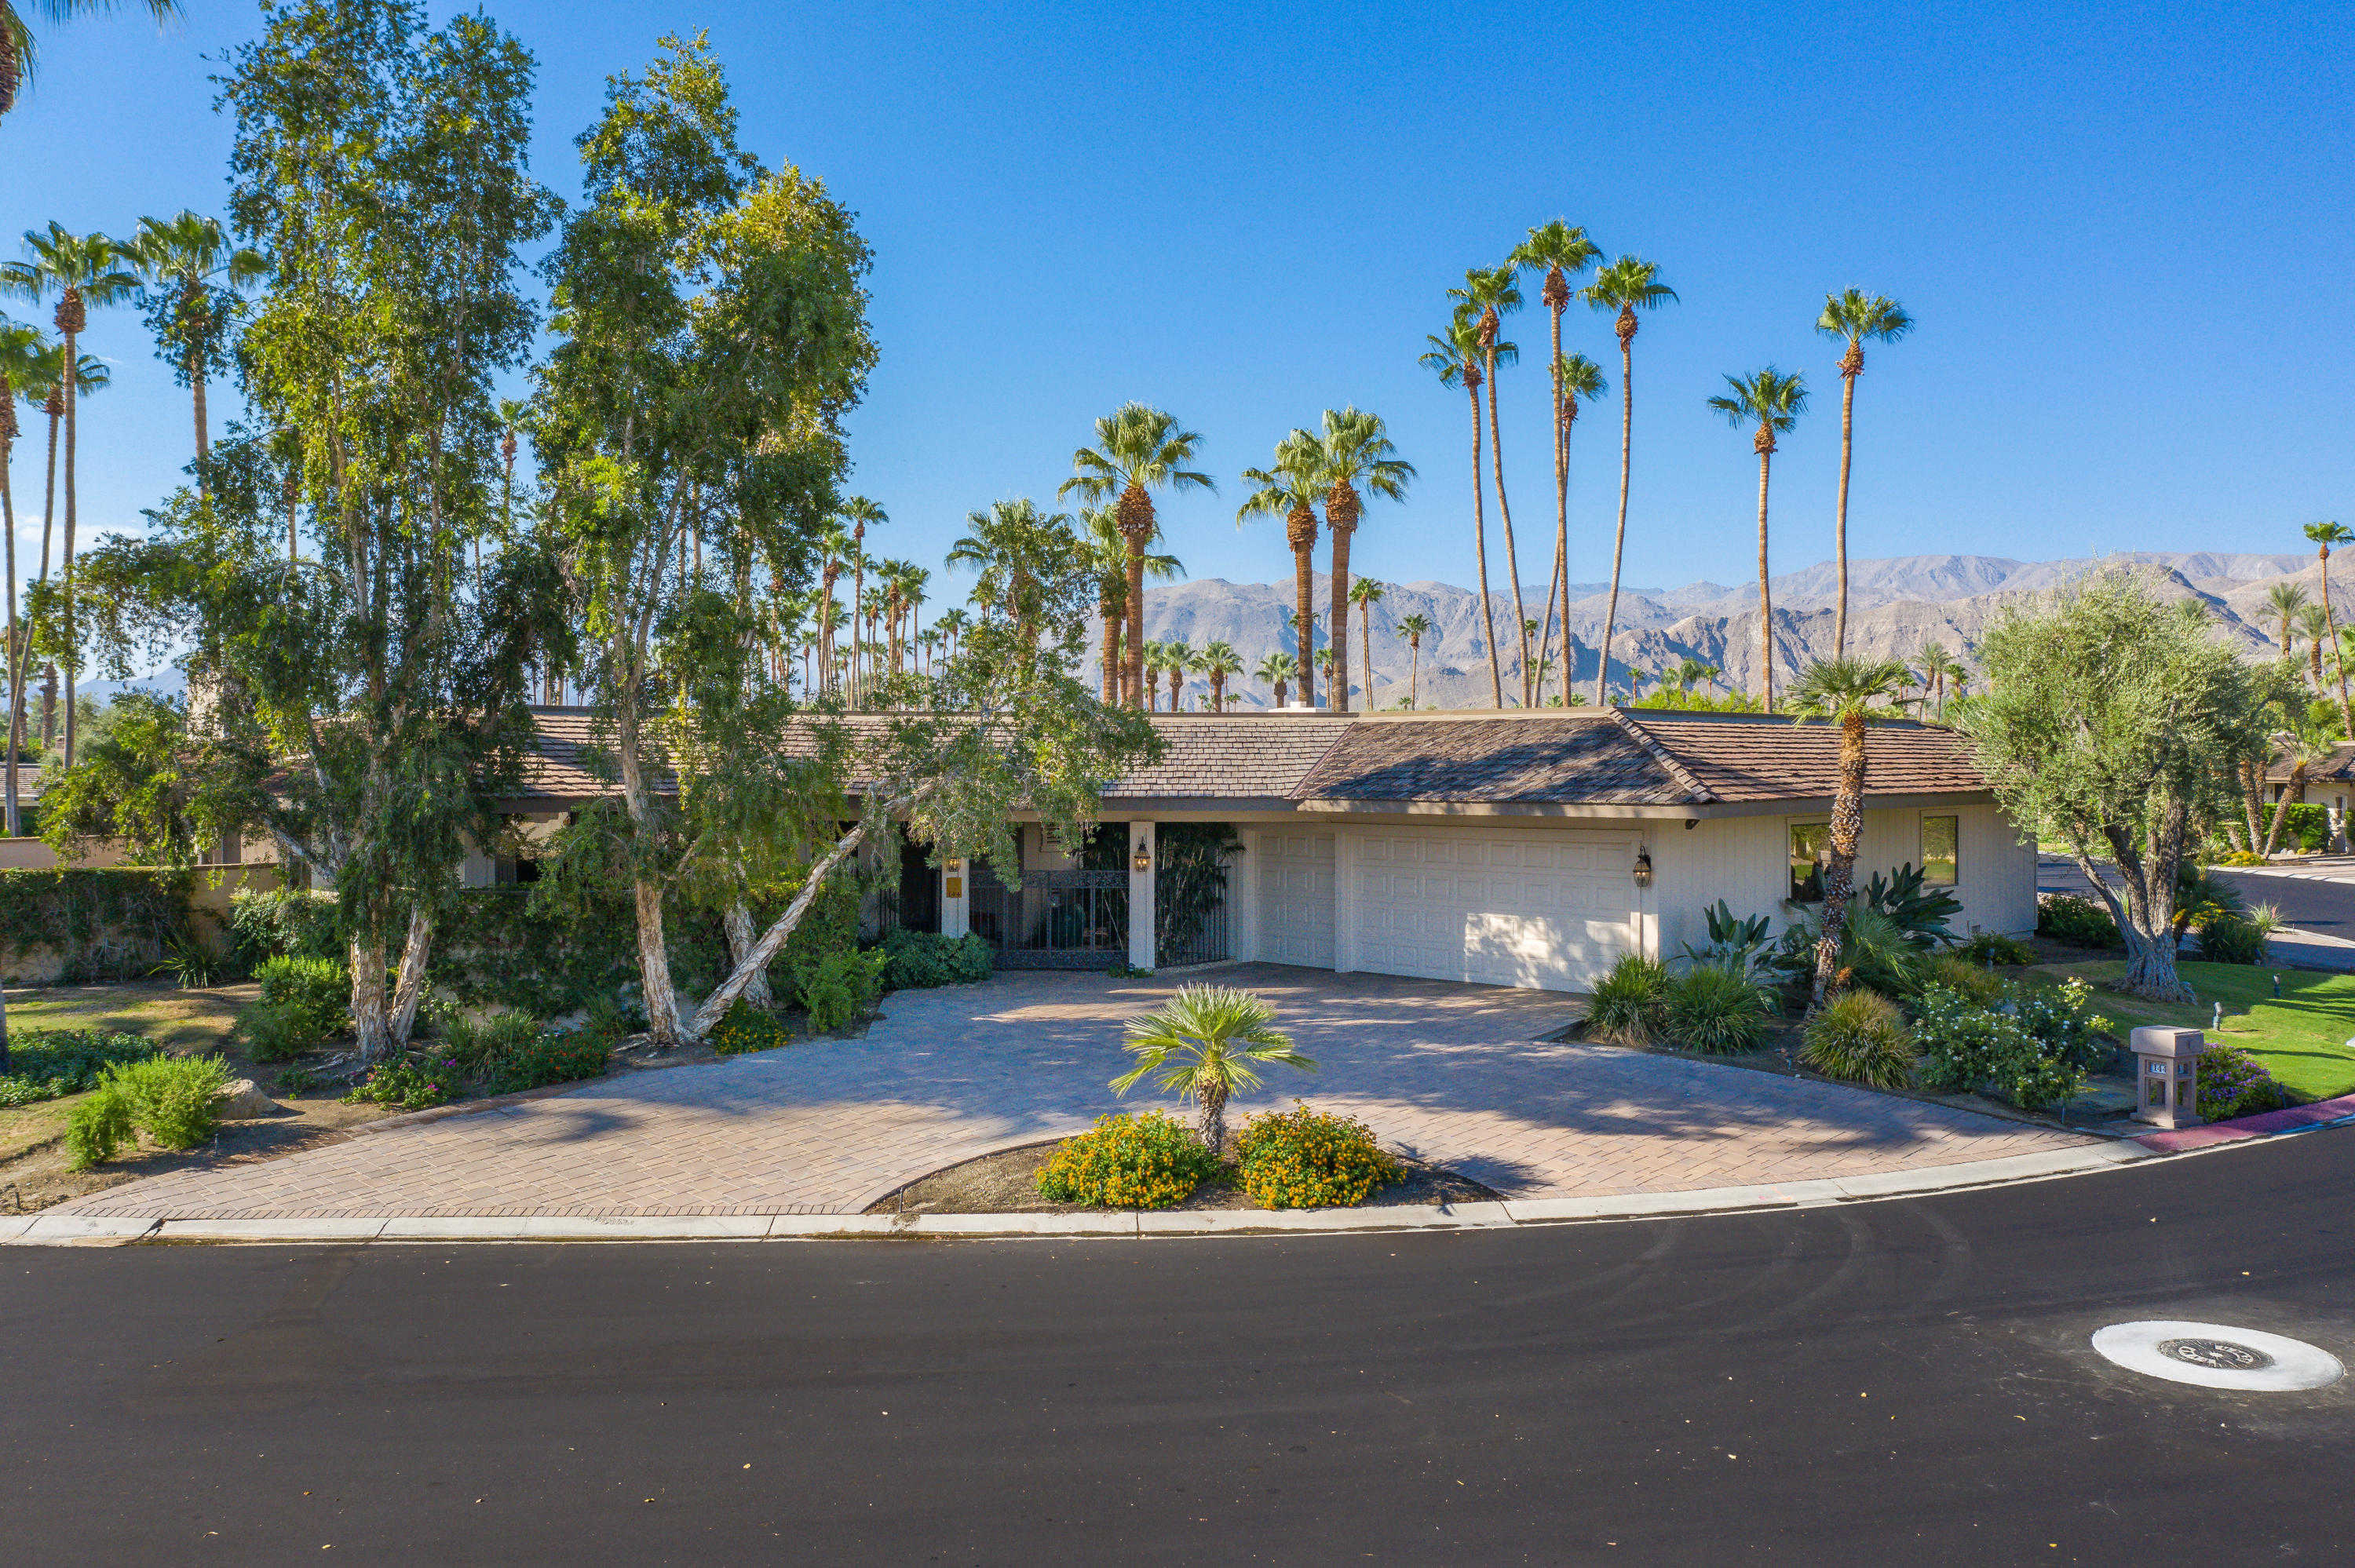 $769,000 - 3Br/3Ba -  for Sale in The Springs Country Club, Rancho Mirage